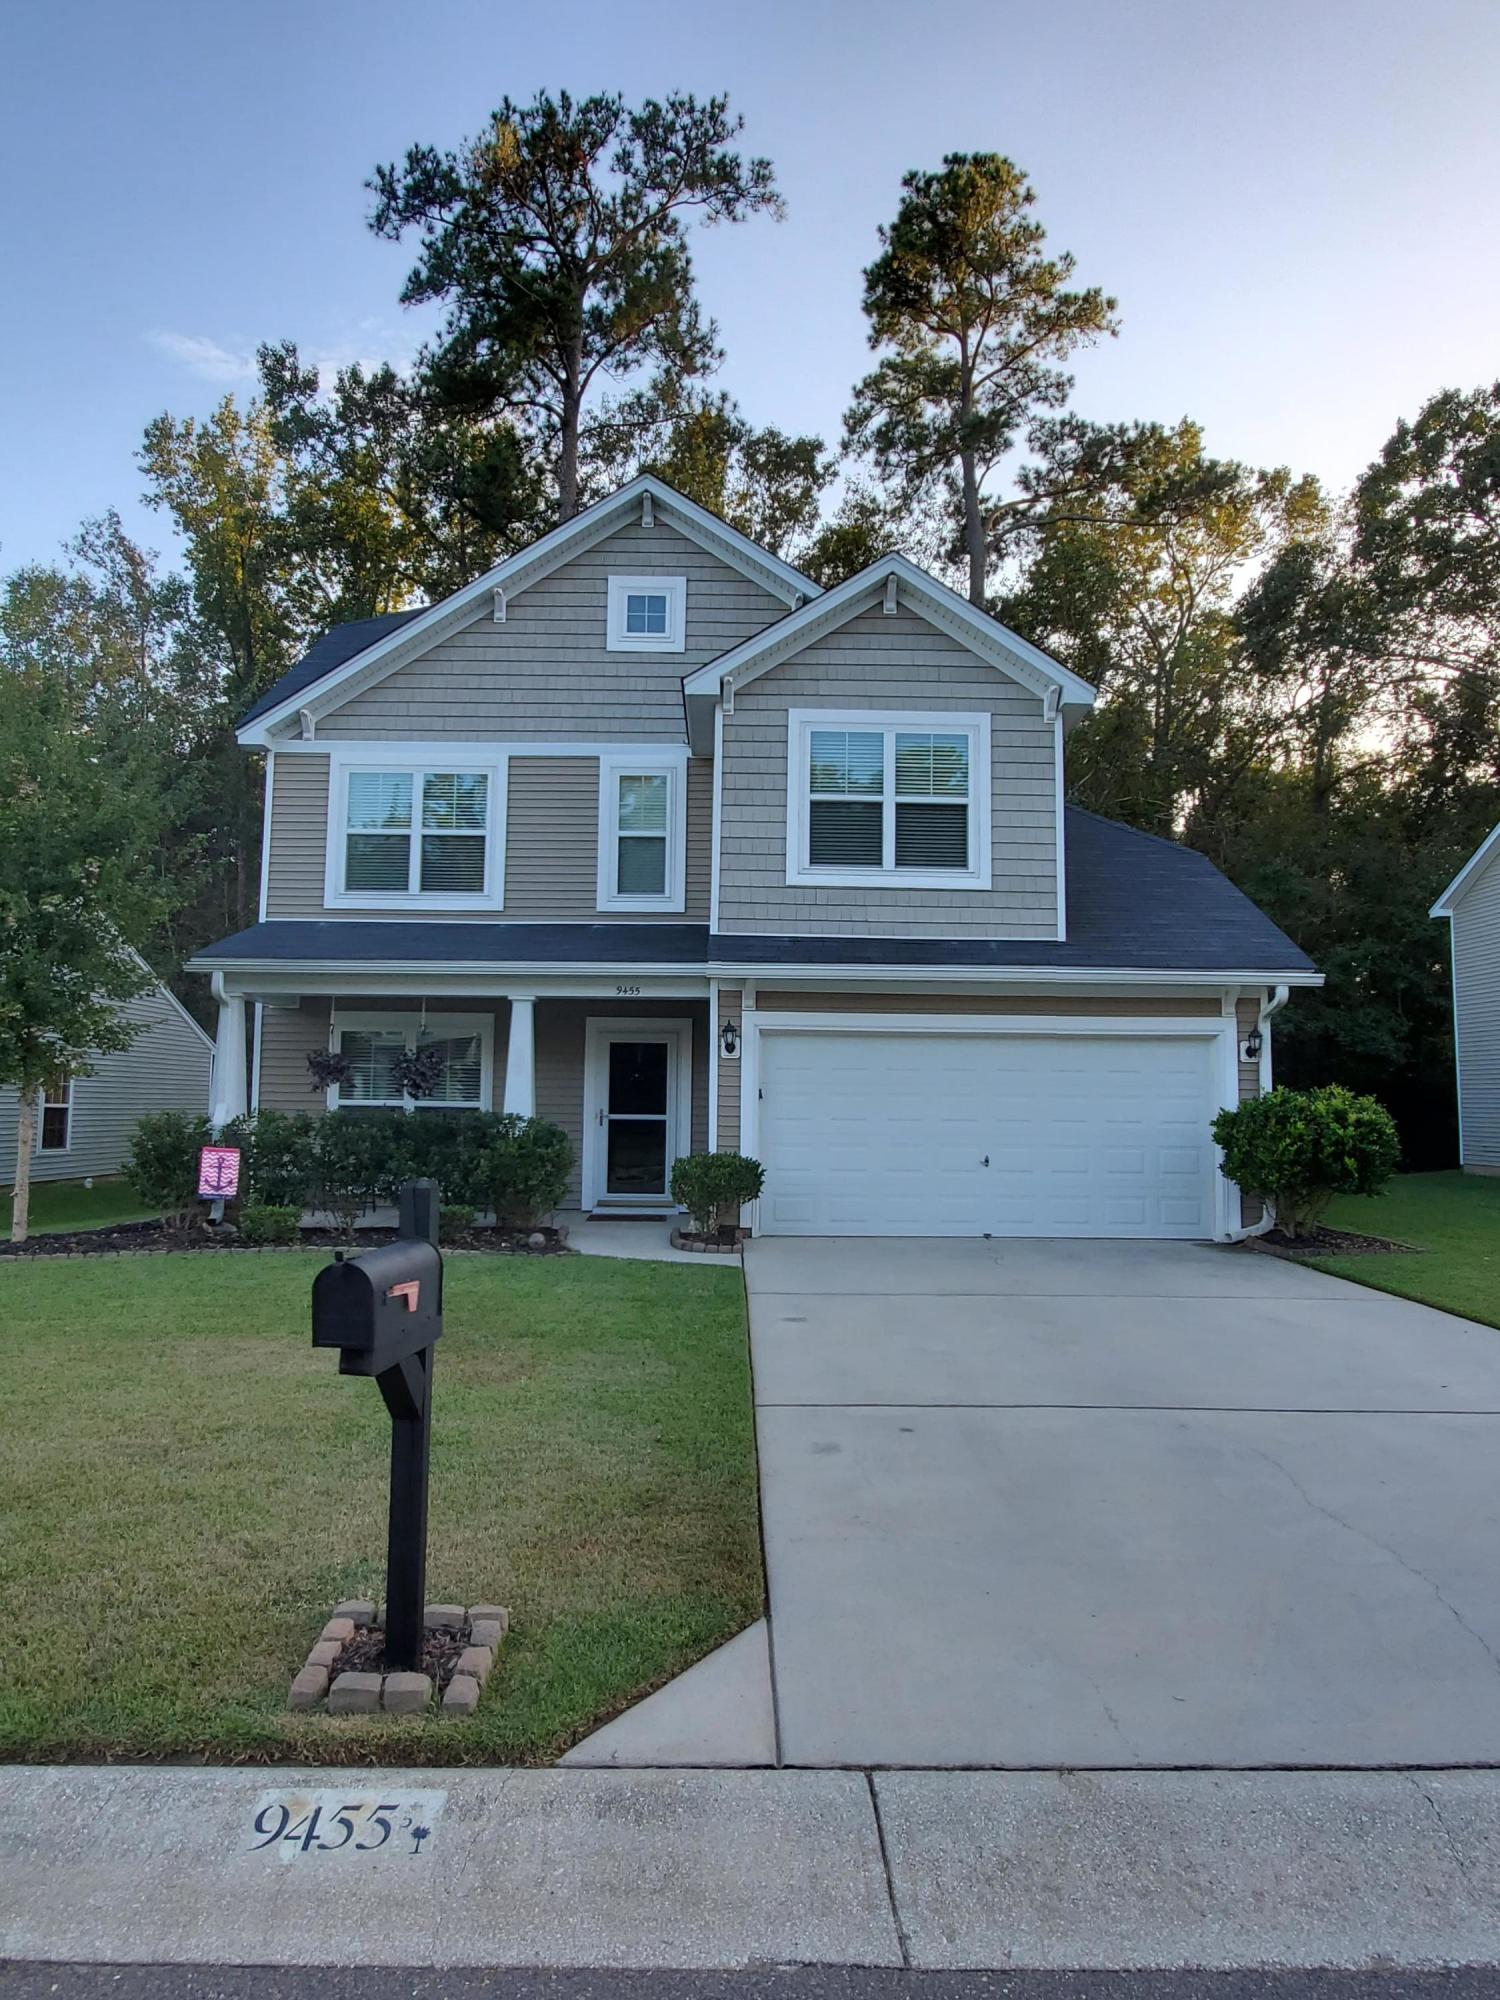 9455 Netted Charm Court Ladson, SC 29456